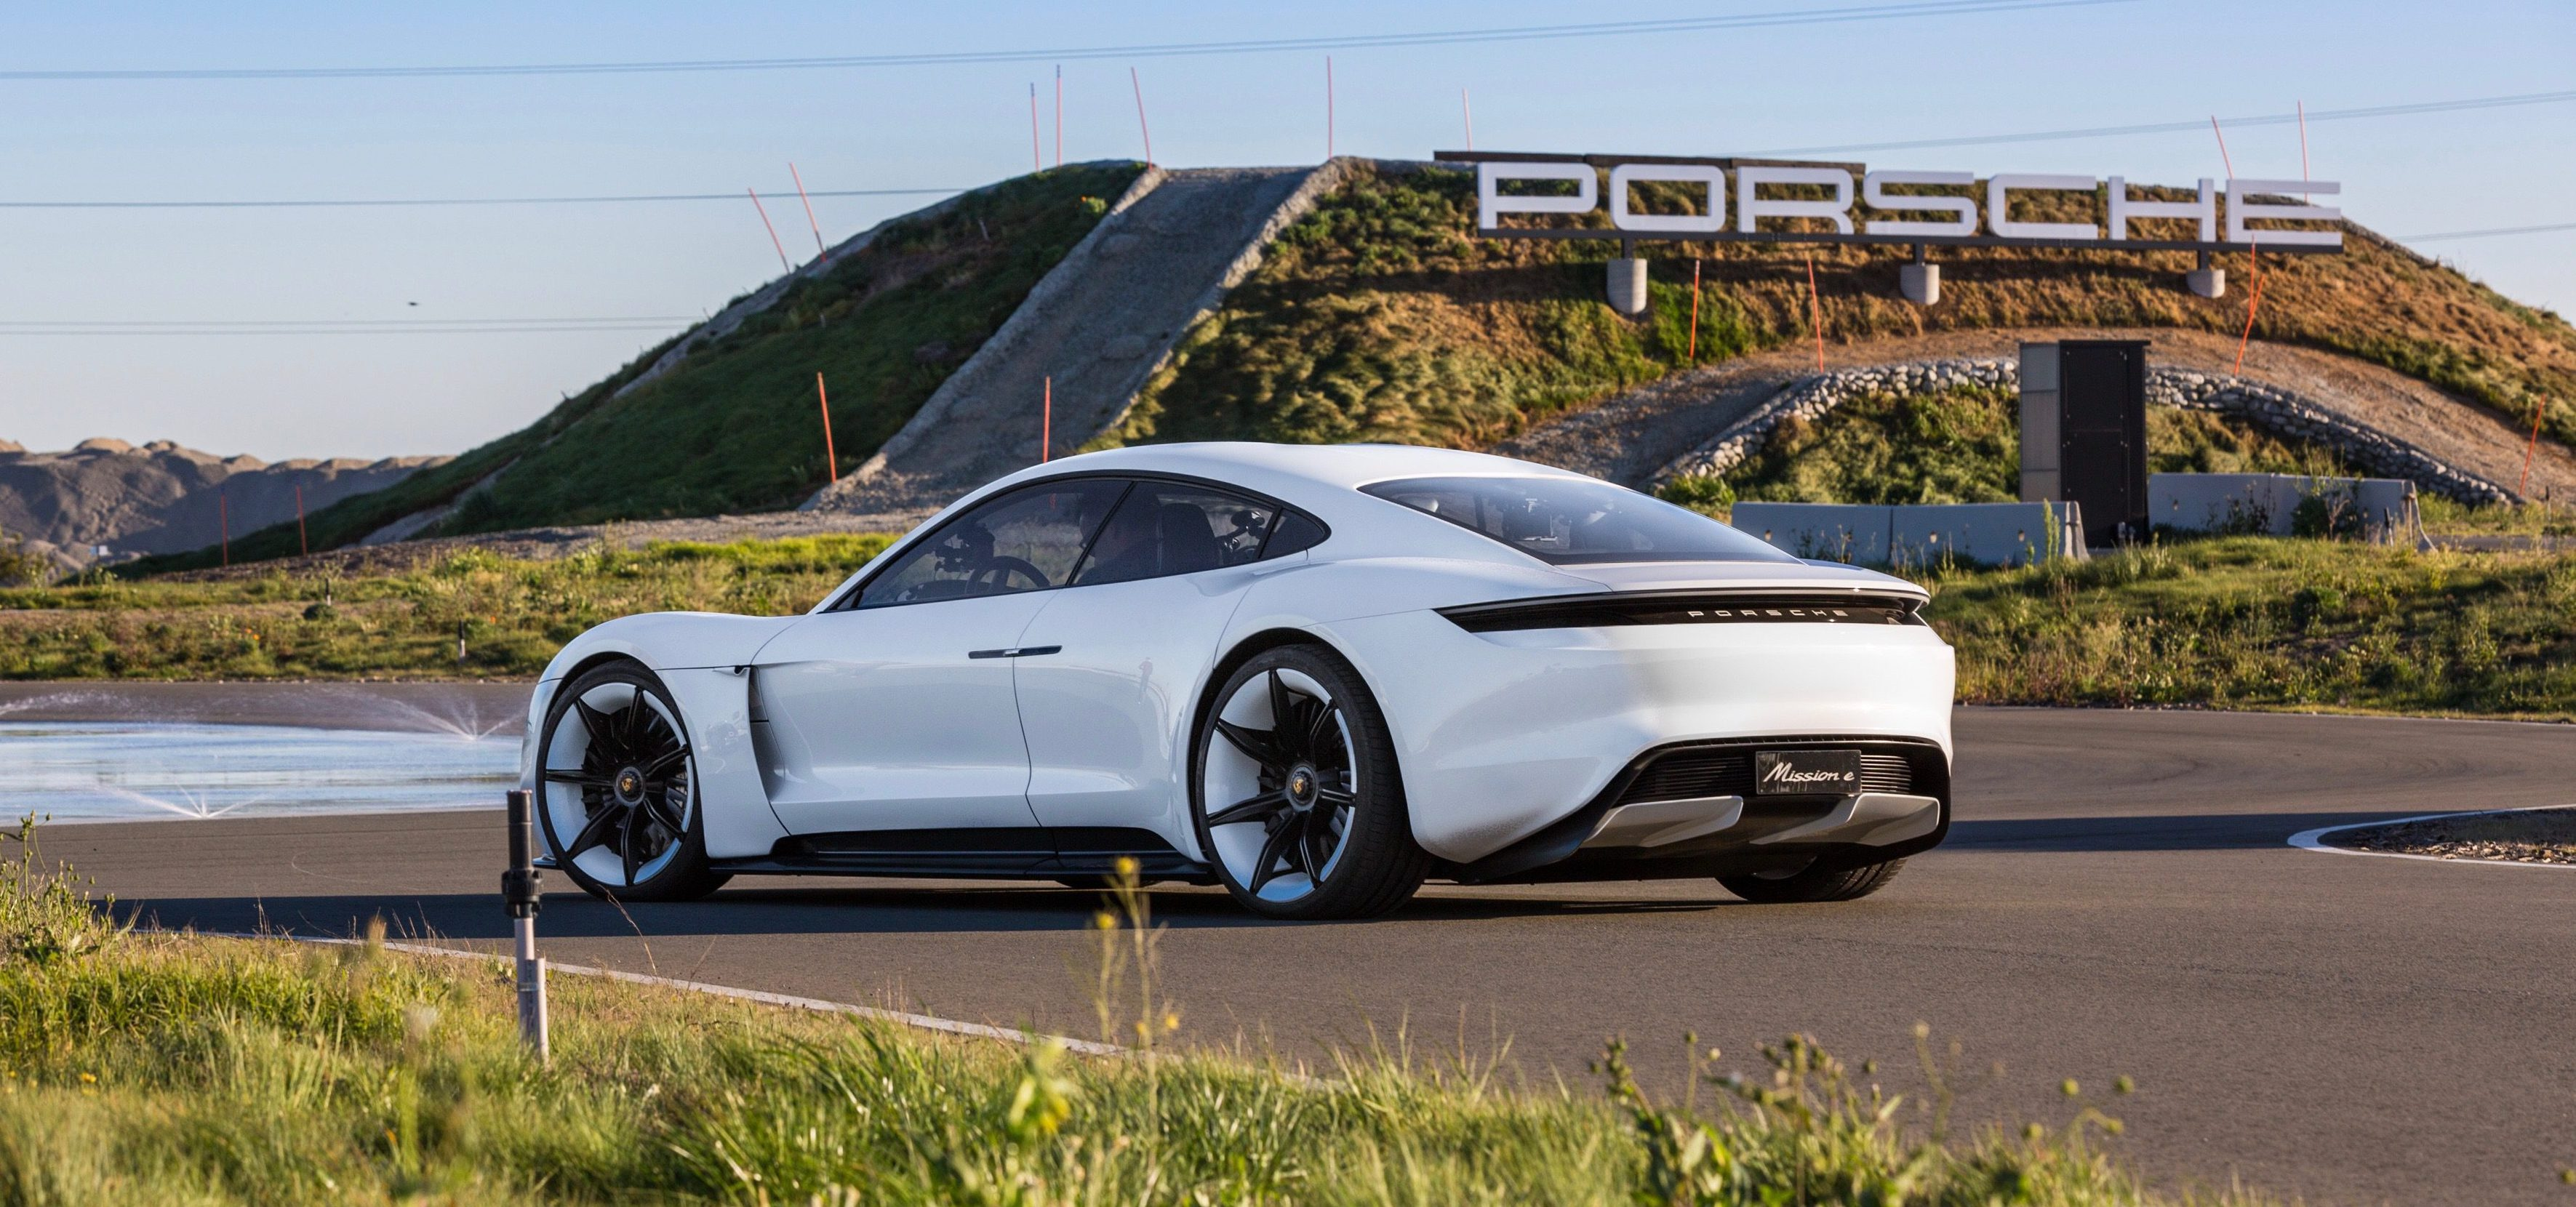 Best Car For Uber >> Porsche's Mission E all-electric vehicle becomes the 'Taycan' - Electrek